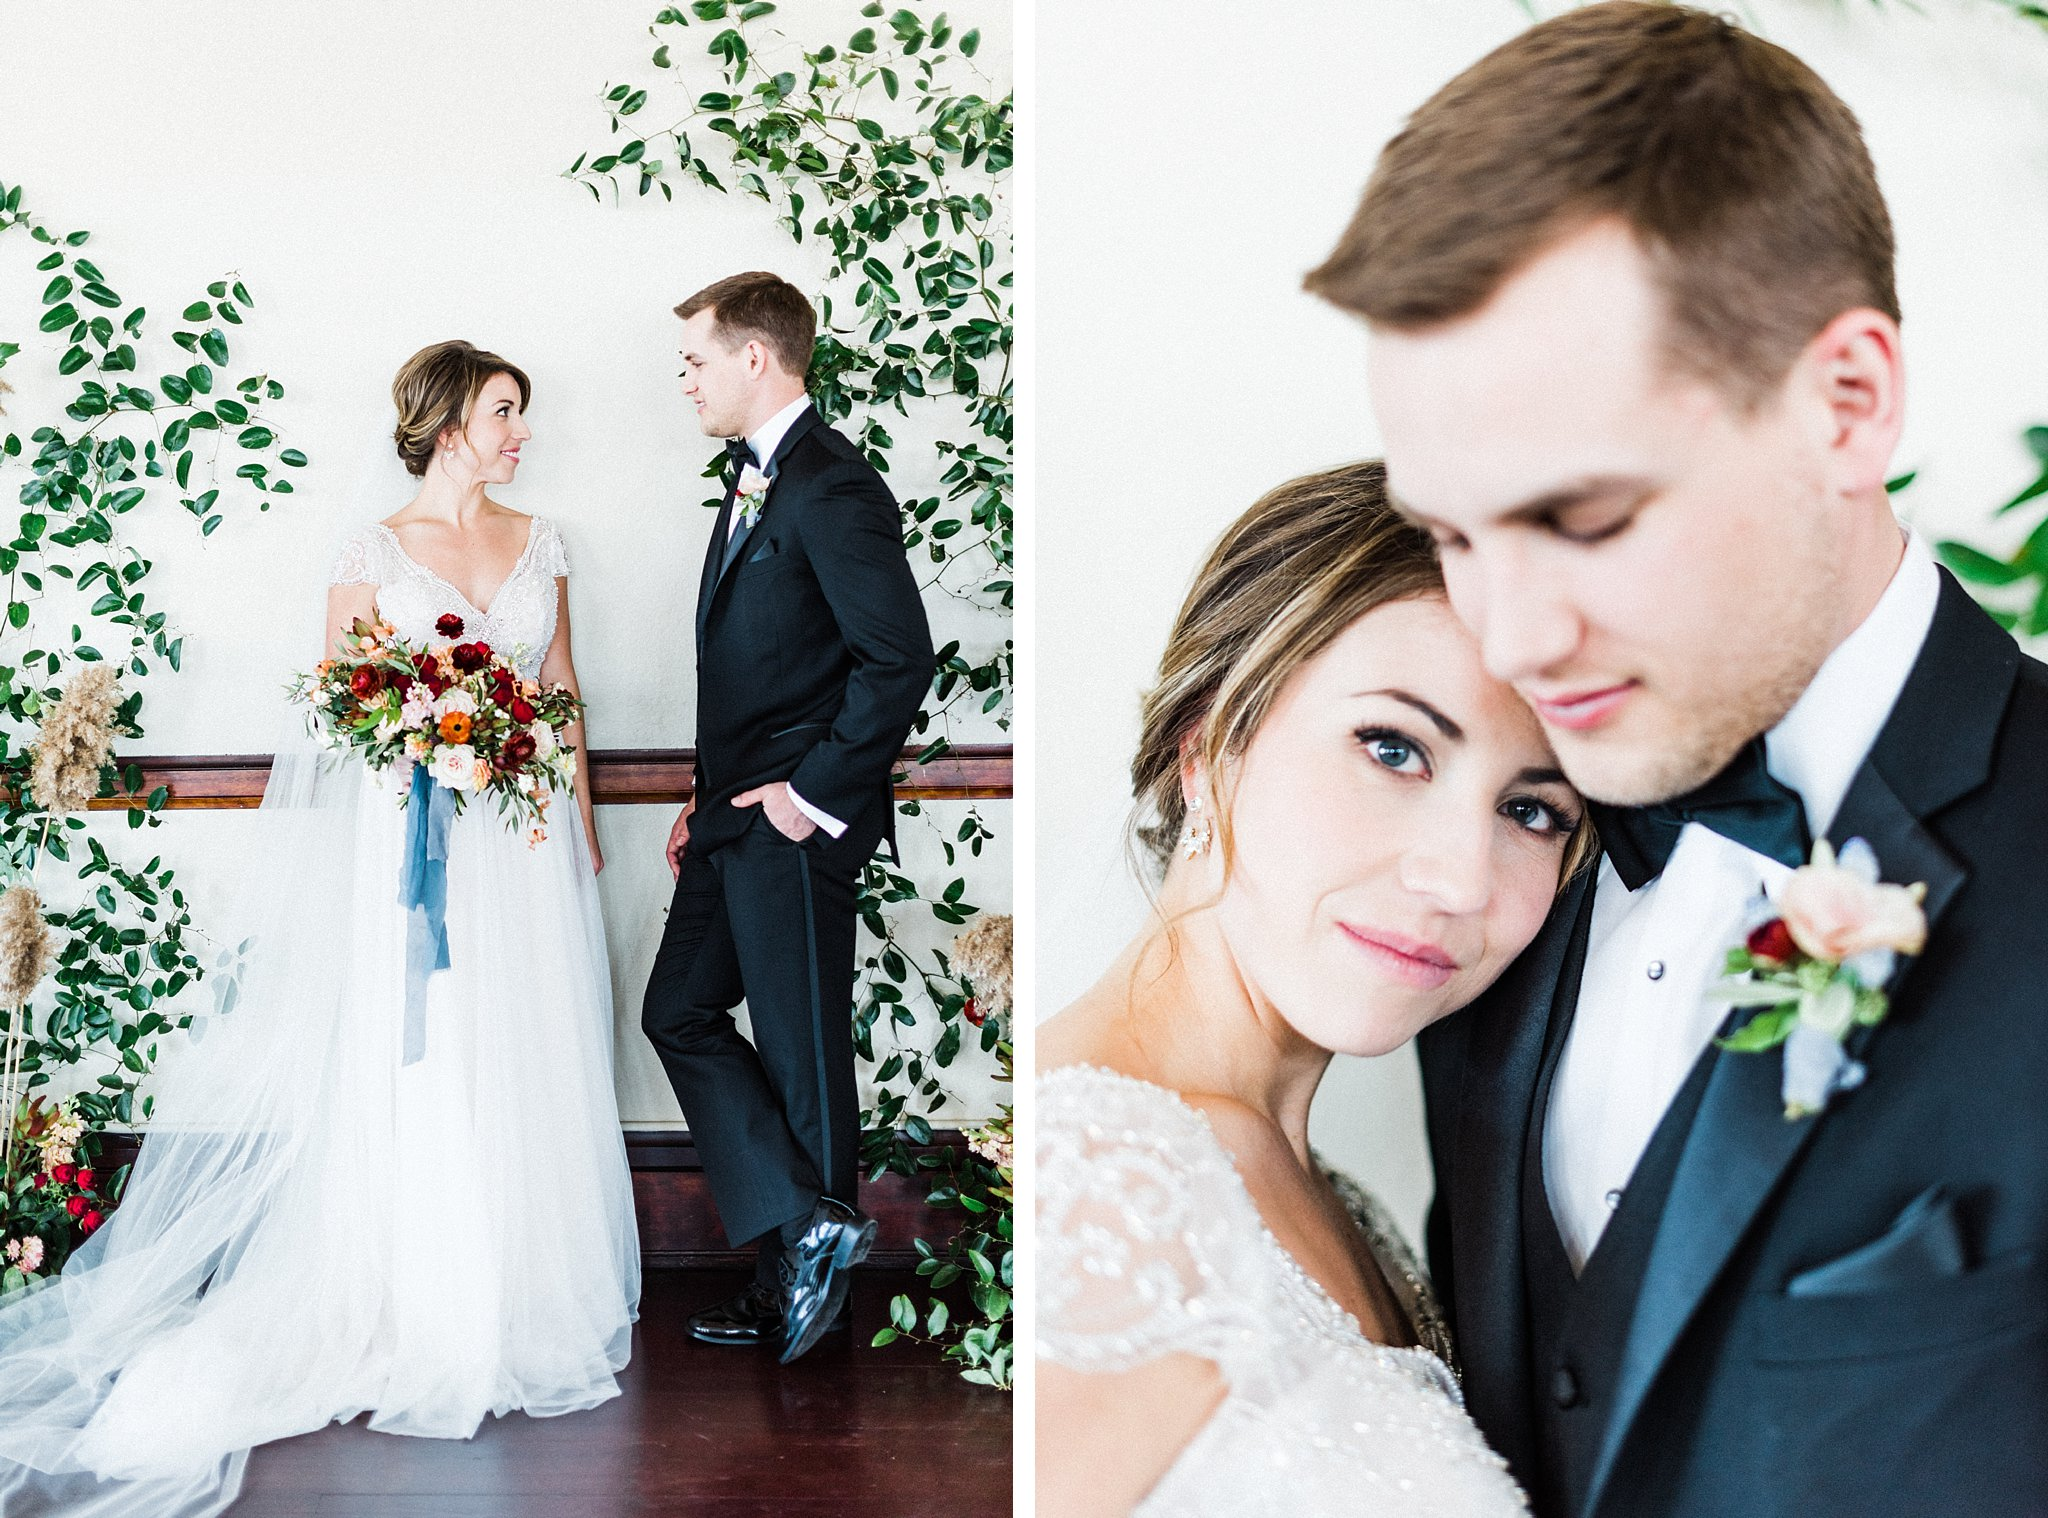 cincinnati wedding photographer47.jpg